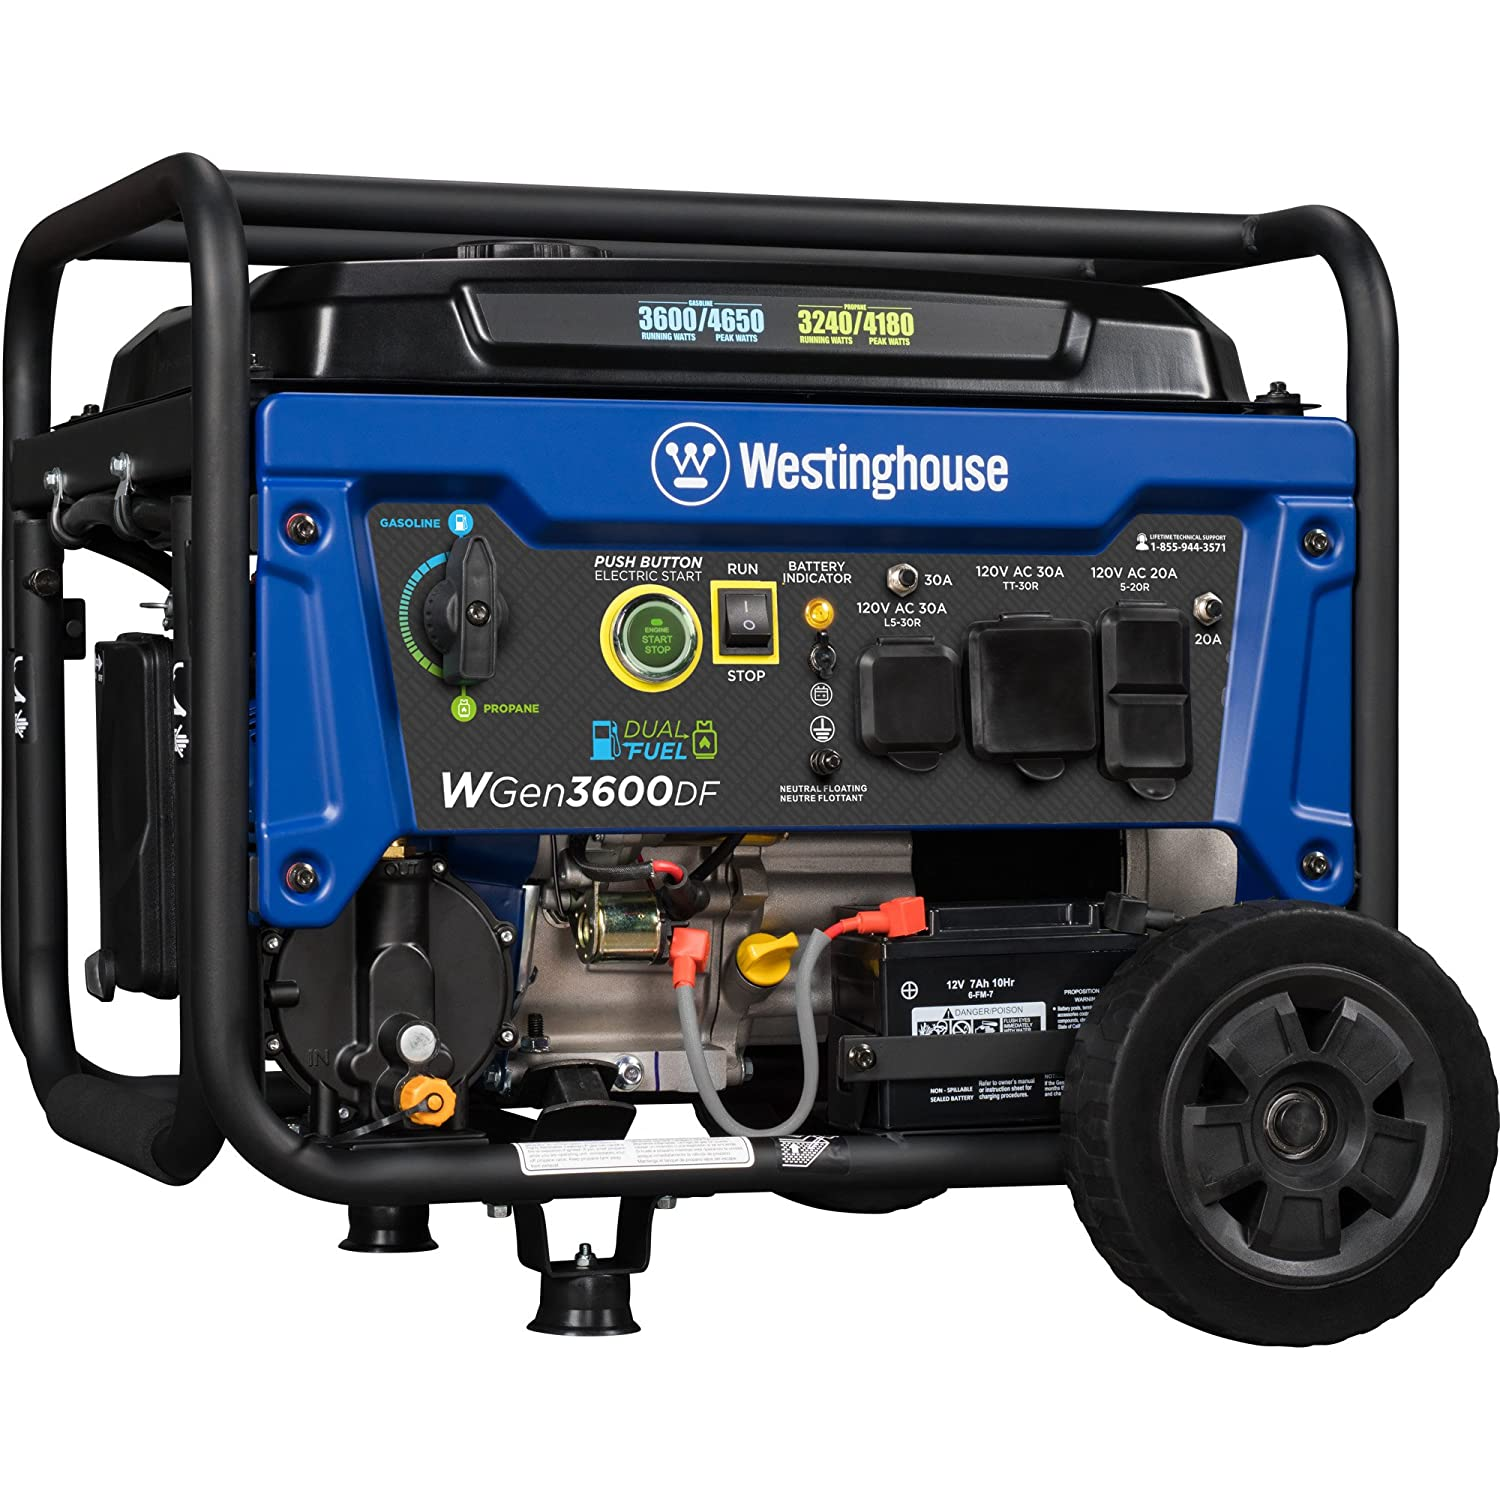 Amazon Westinghouse WGen3600DF Dual Fuel Gas and Propane